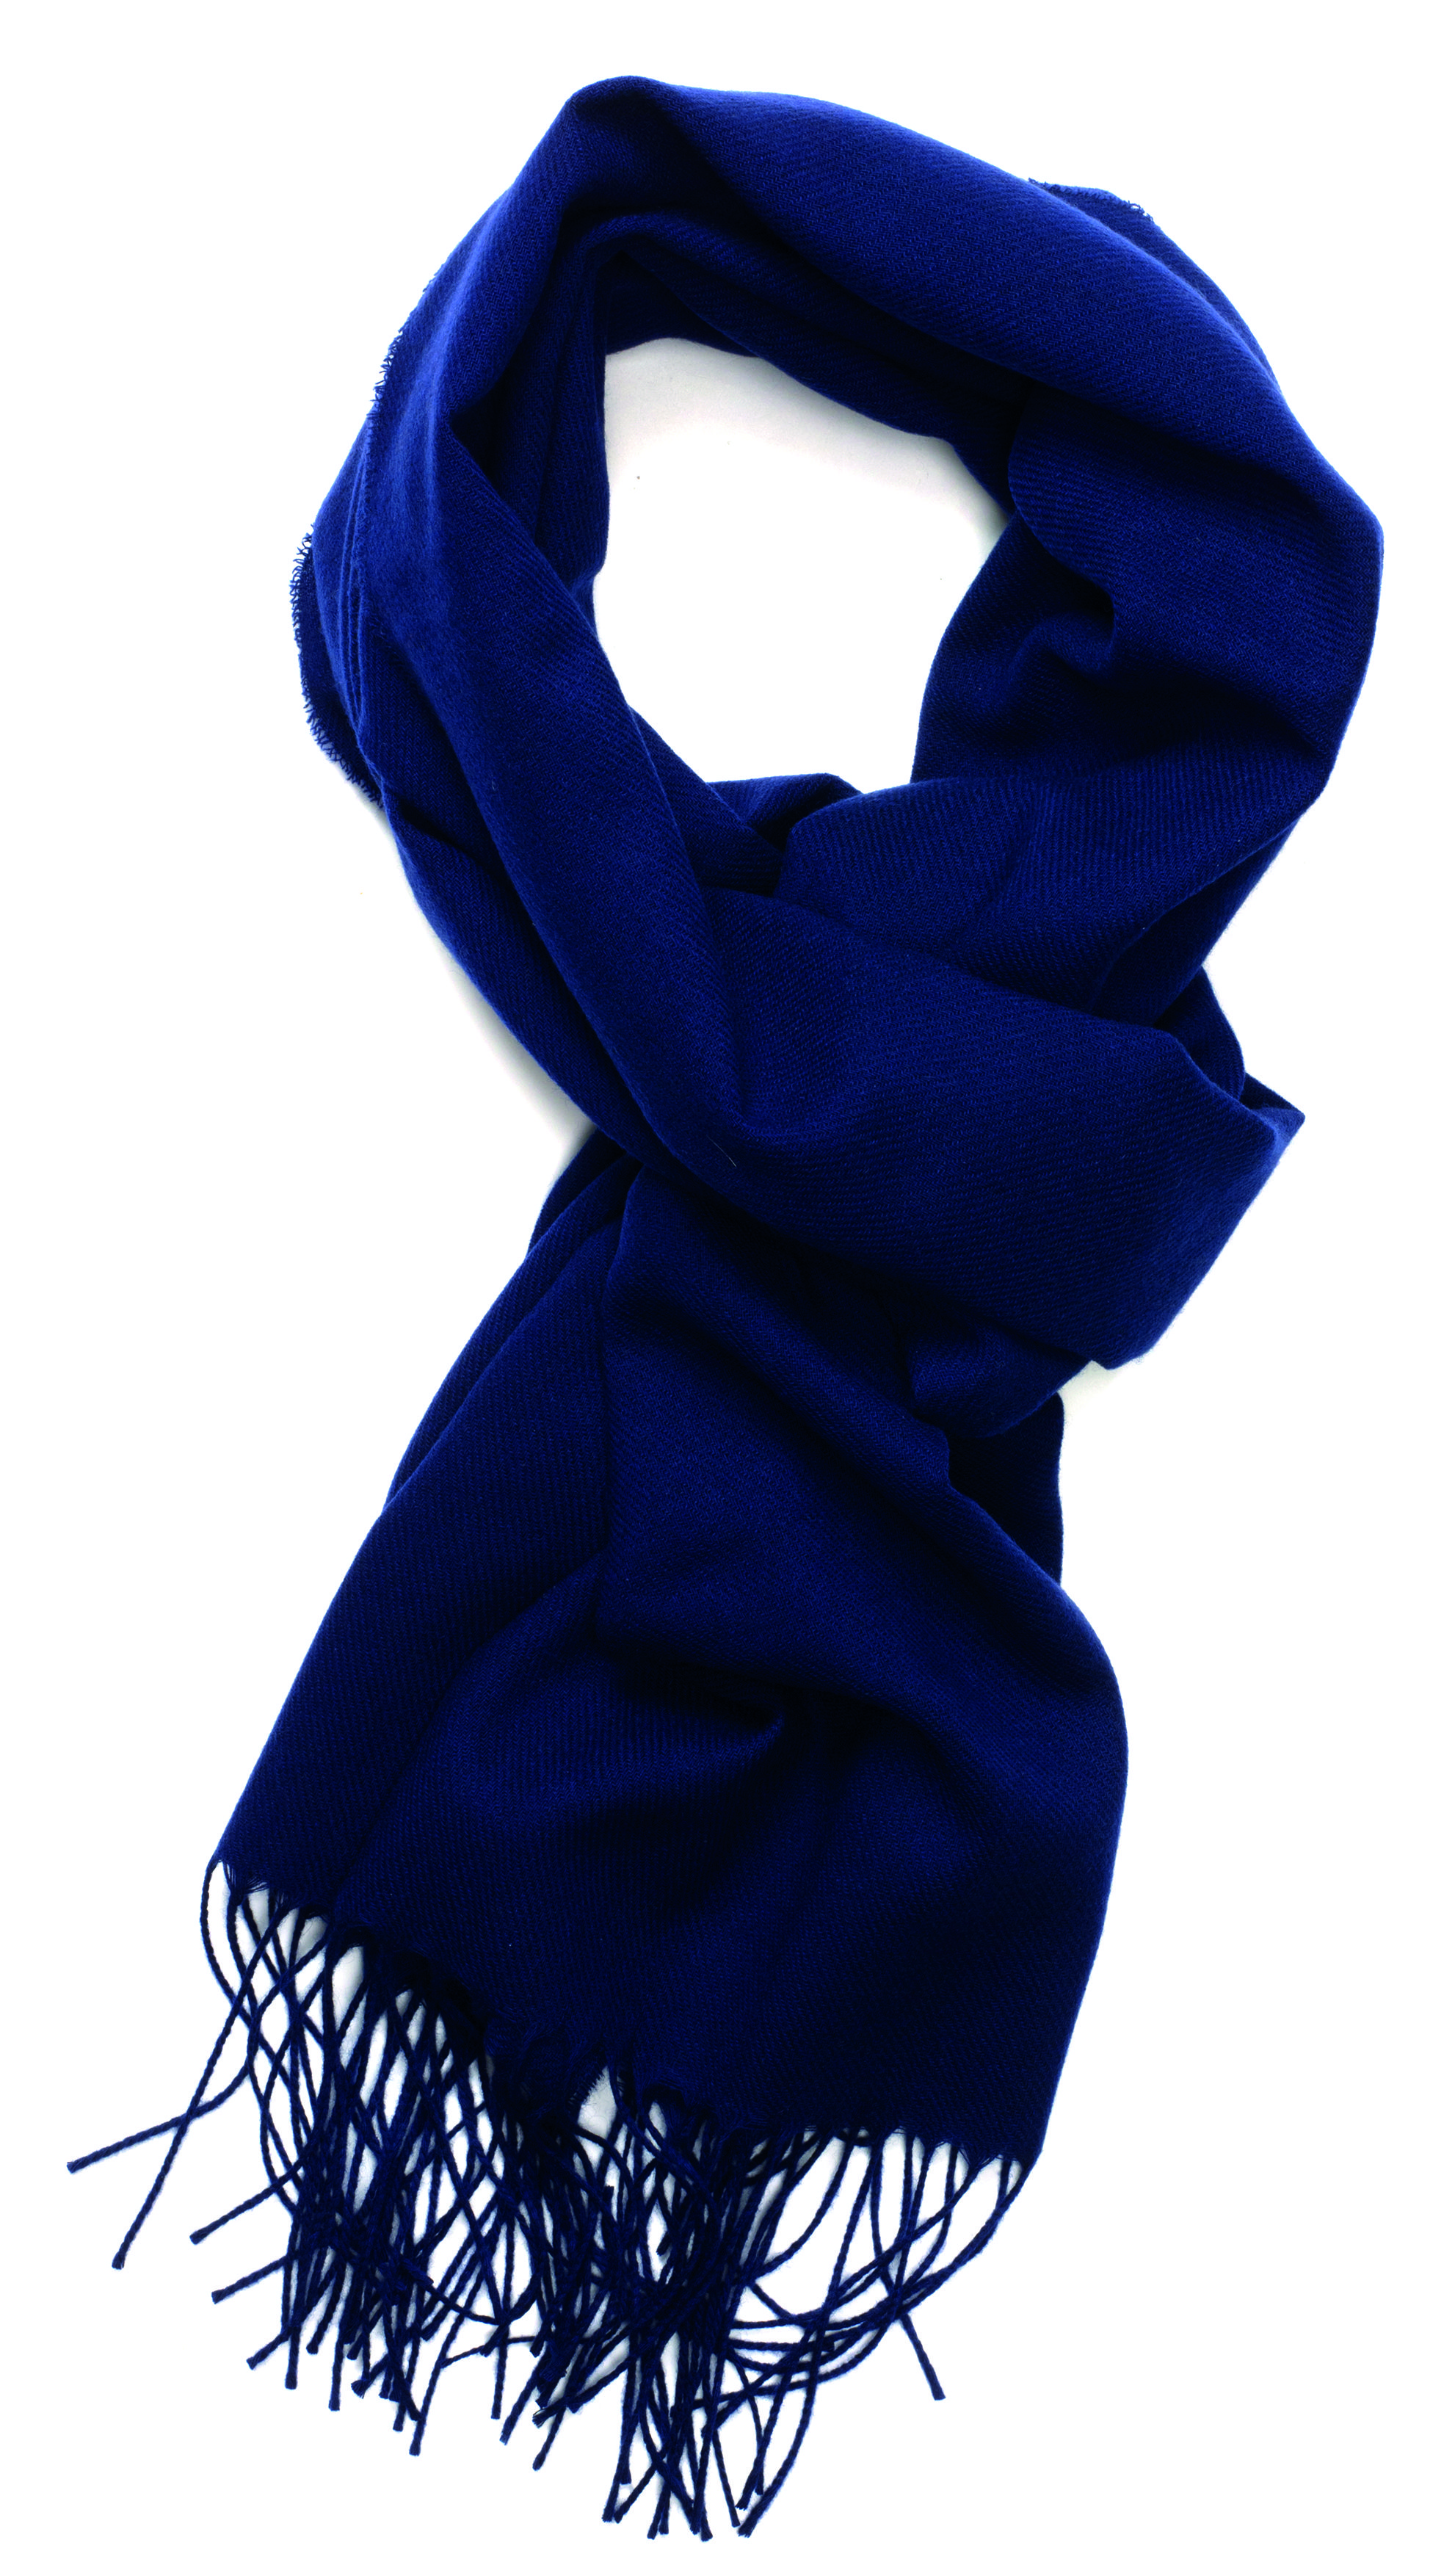 4775e690e Made in England and from 100% cashmere, this lightweight scarf is the  perfect outfit accessory in the summer months.